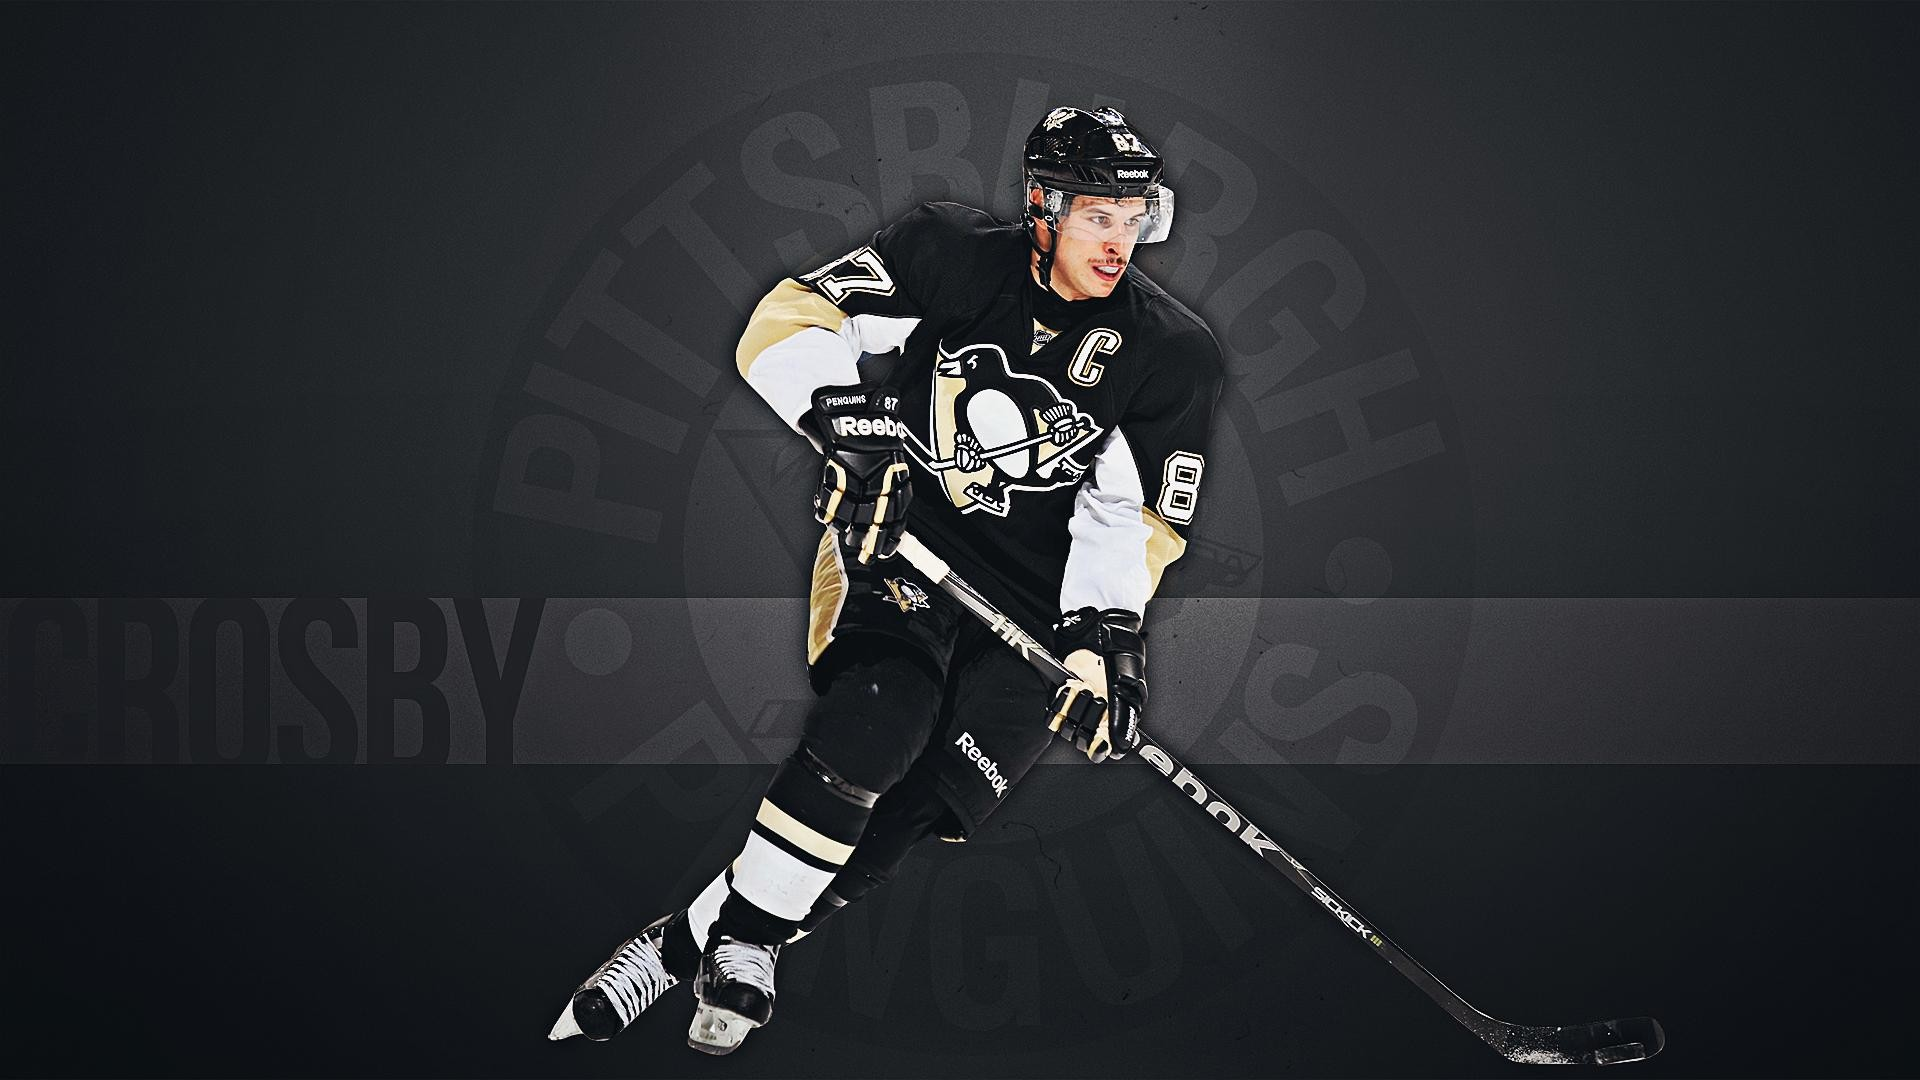 1920x1080 wallpaper.wiki-Desktop-Pittsburgh-Penguins-Backgrounds-PIC-WPE001819